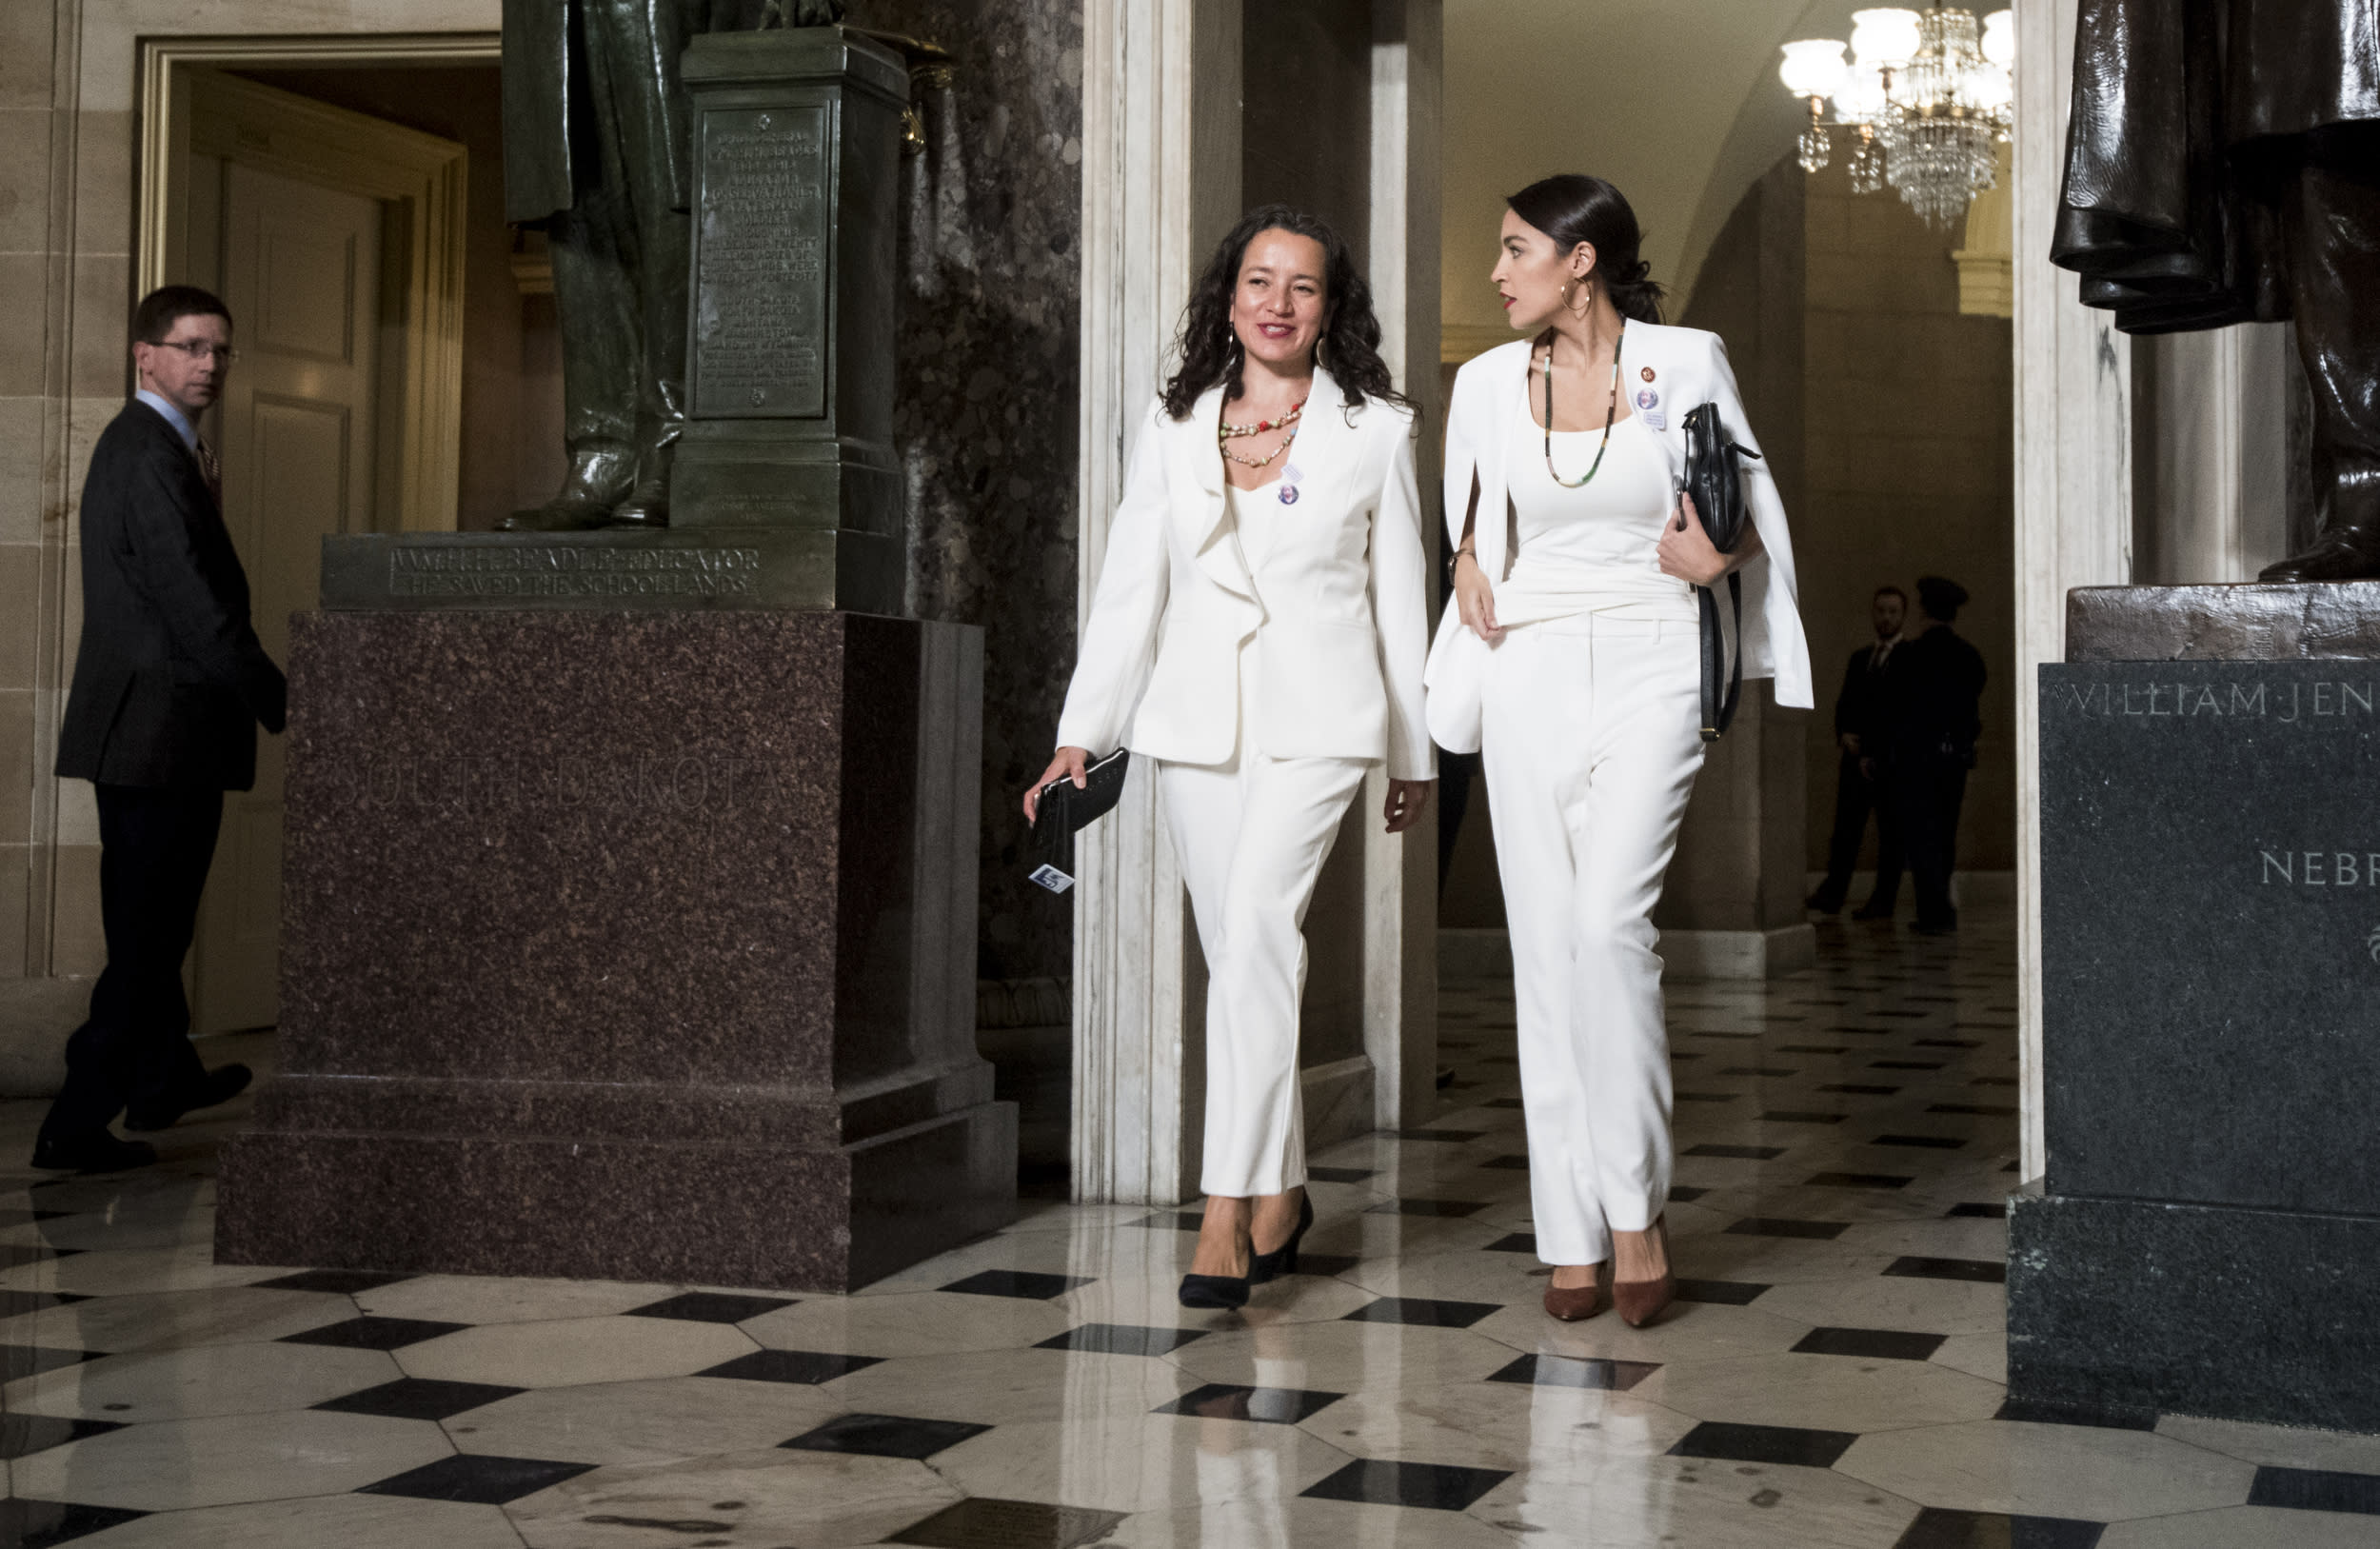 UNITED STATES - FEBRUARY 5: Rep. Alexandria Ocasio-Cortez, D-N.Y., right, walks with her State of the Union guest Ana Maria Archila to the House chamber for President Donald Trump's State of the Union address to a joint session of Congress in the Capitol on Tuesday, Feb. 5, 2019. (Photo By Bill Clark/CQ Roll Call)